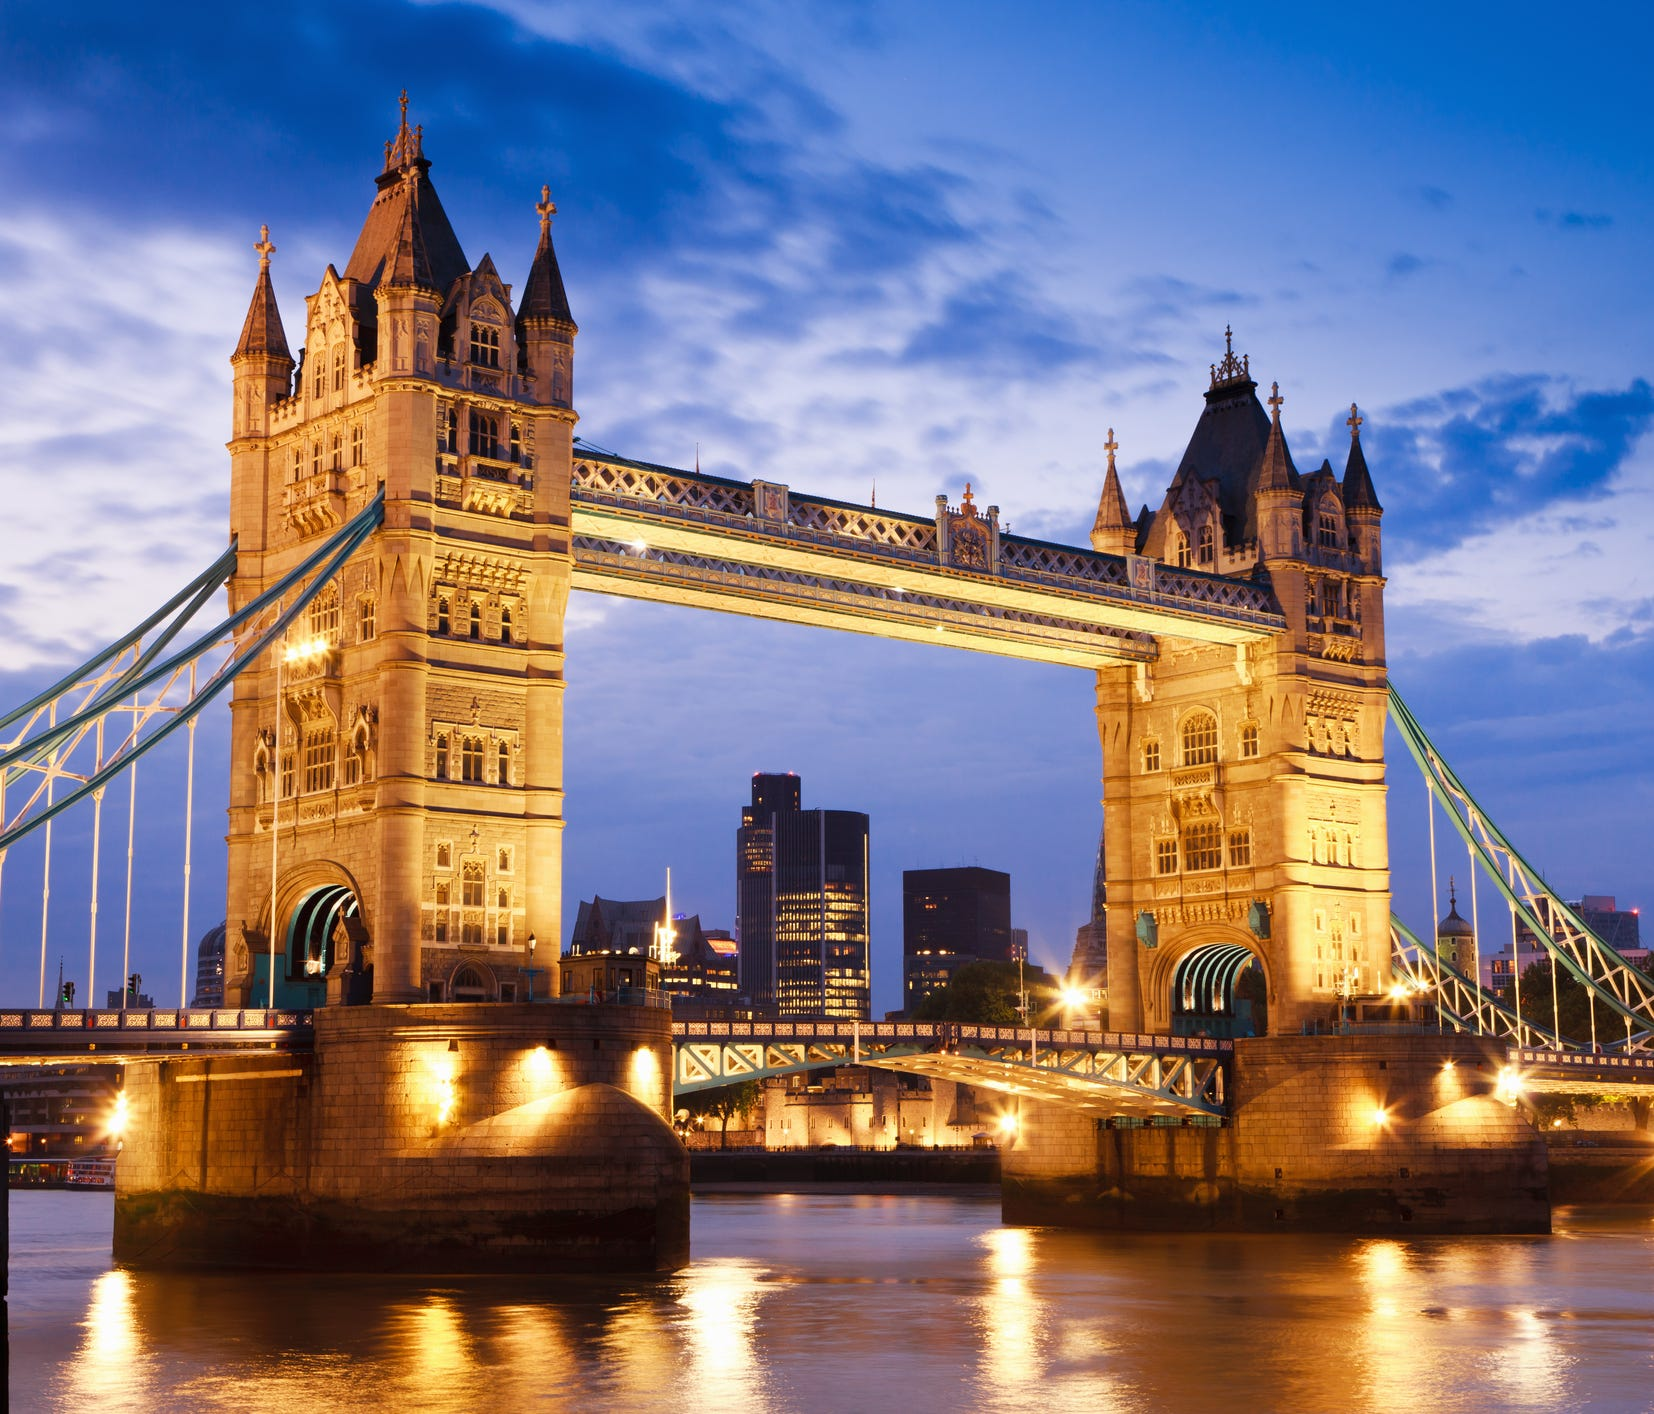 For U.S. travelers, getting to London has been a bargain for months now.